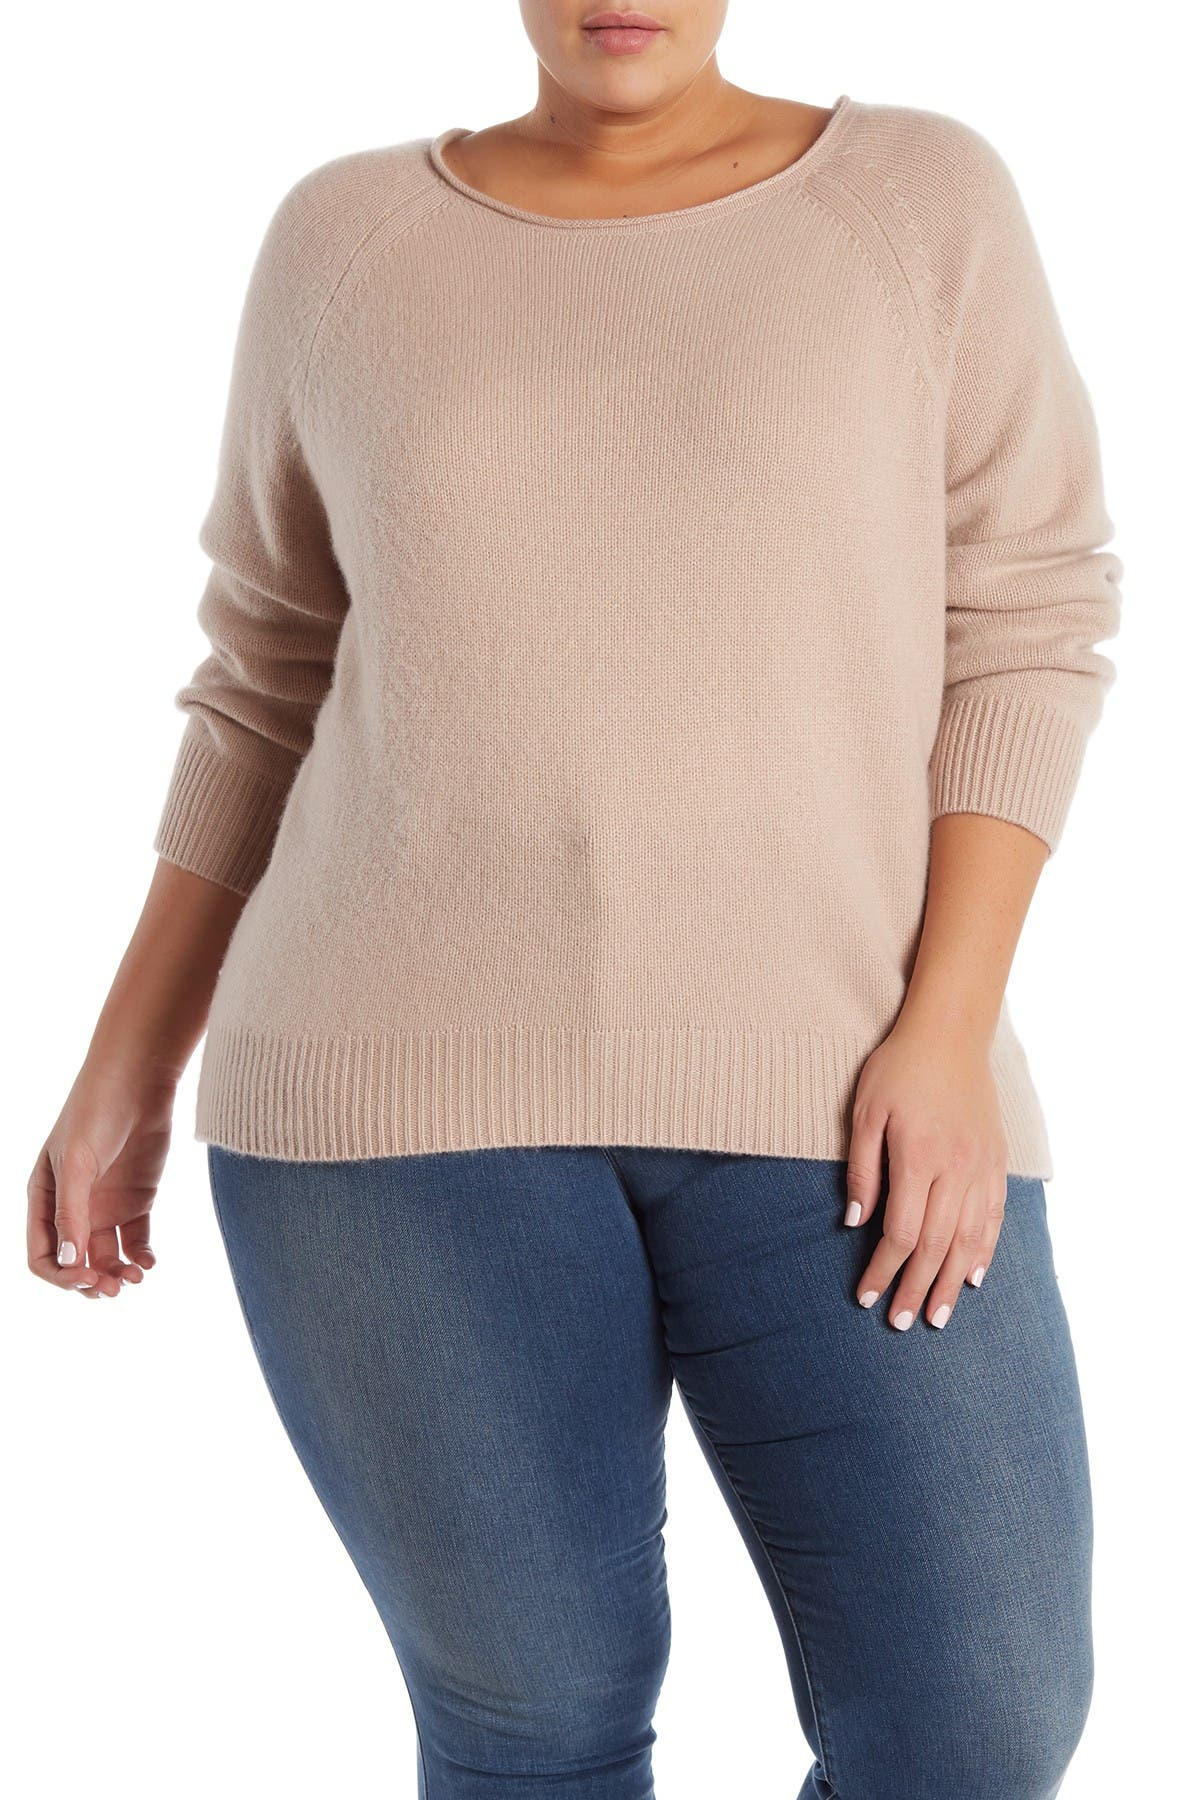 Image of Naked Cashmere Leila Raglan Cashmere Sweater